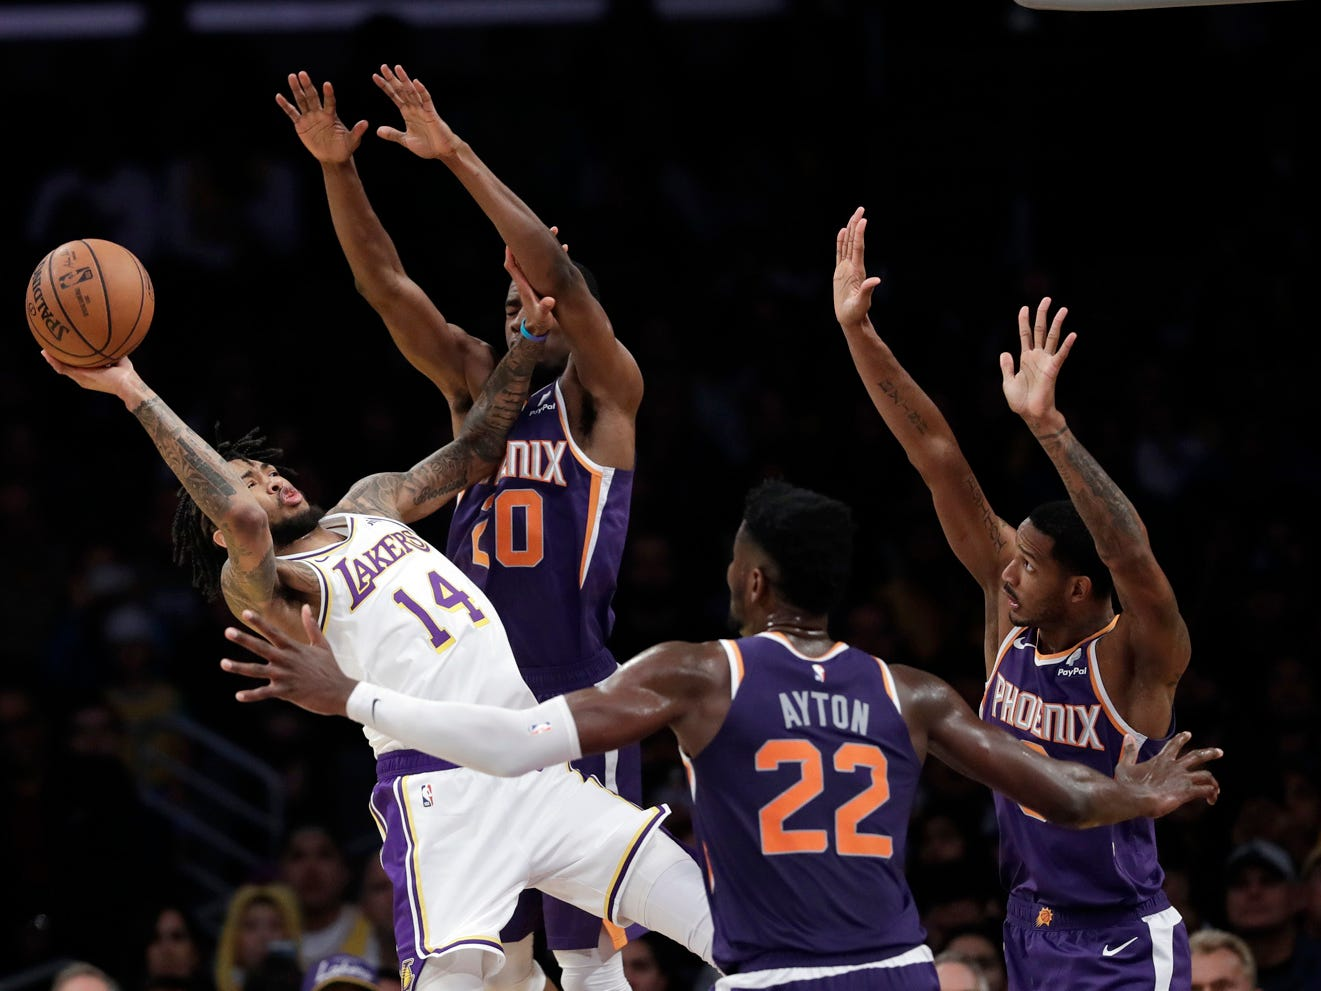 Los Angeles Lakers' Brandon Ingram (14) attempts a shot as Phoenix Suns' Josh Jackson, second from left, Deandre Ayton (22) and Trevor Ariza, right, defend during the first half of an NBA basketball game Sunday, Dec. 2, 2018, in Los Angeles. (AP Photo/Marcio Jose Sanchez)